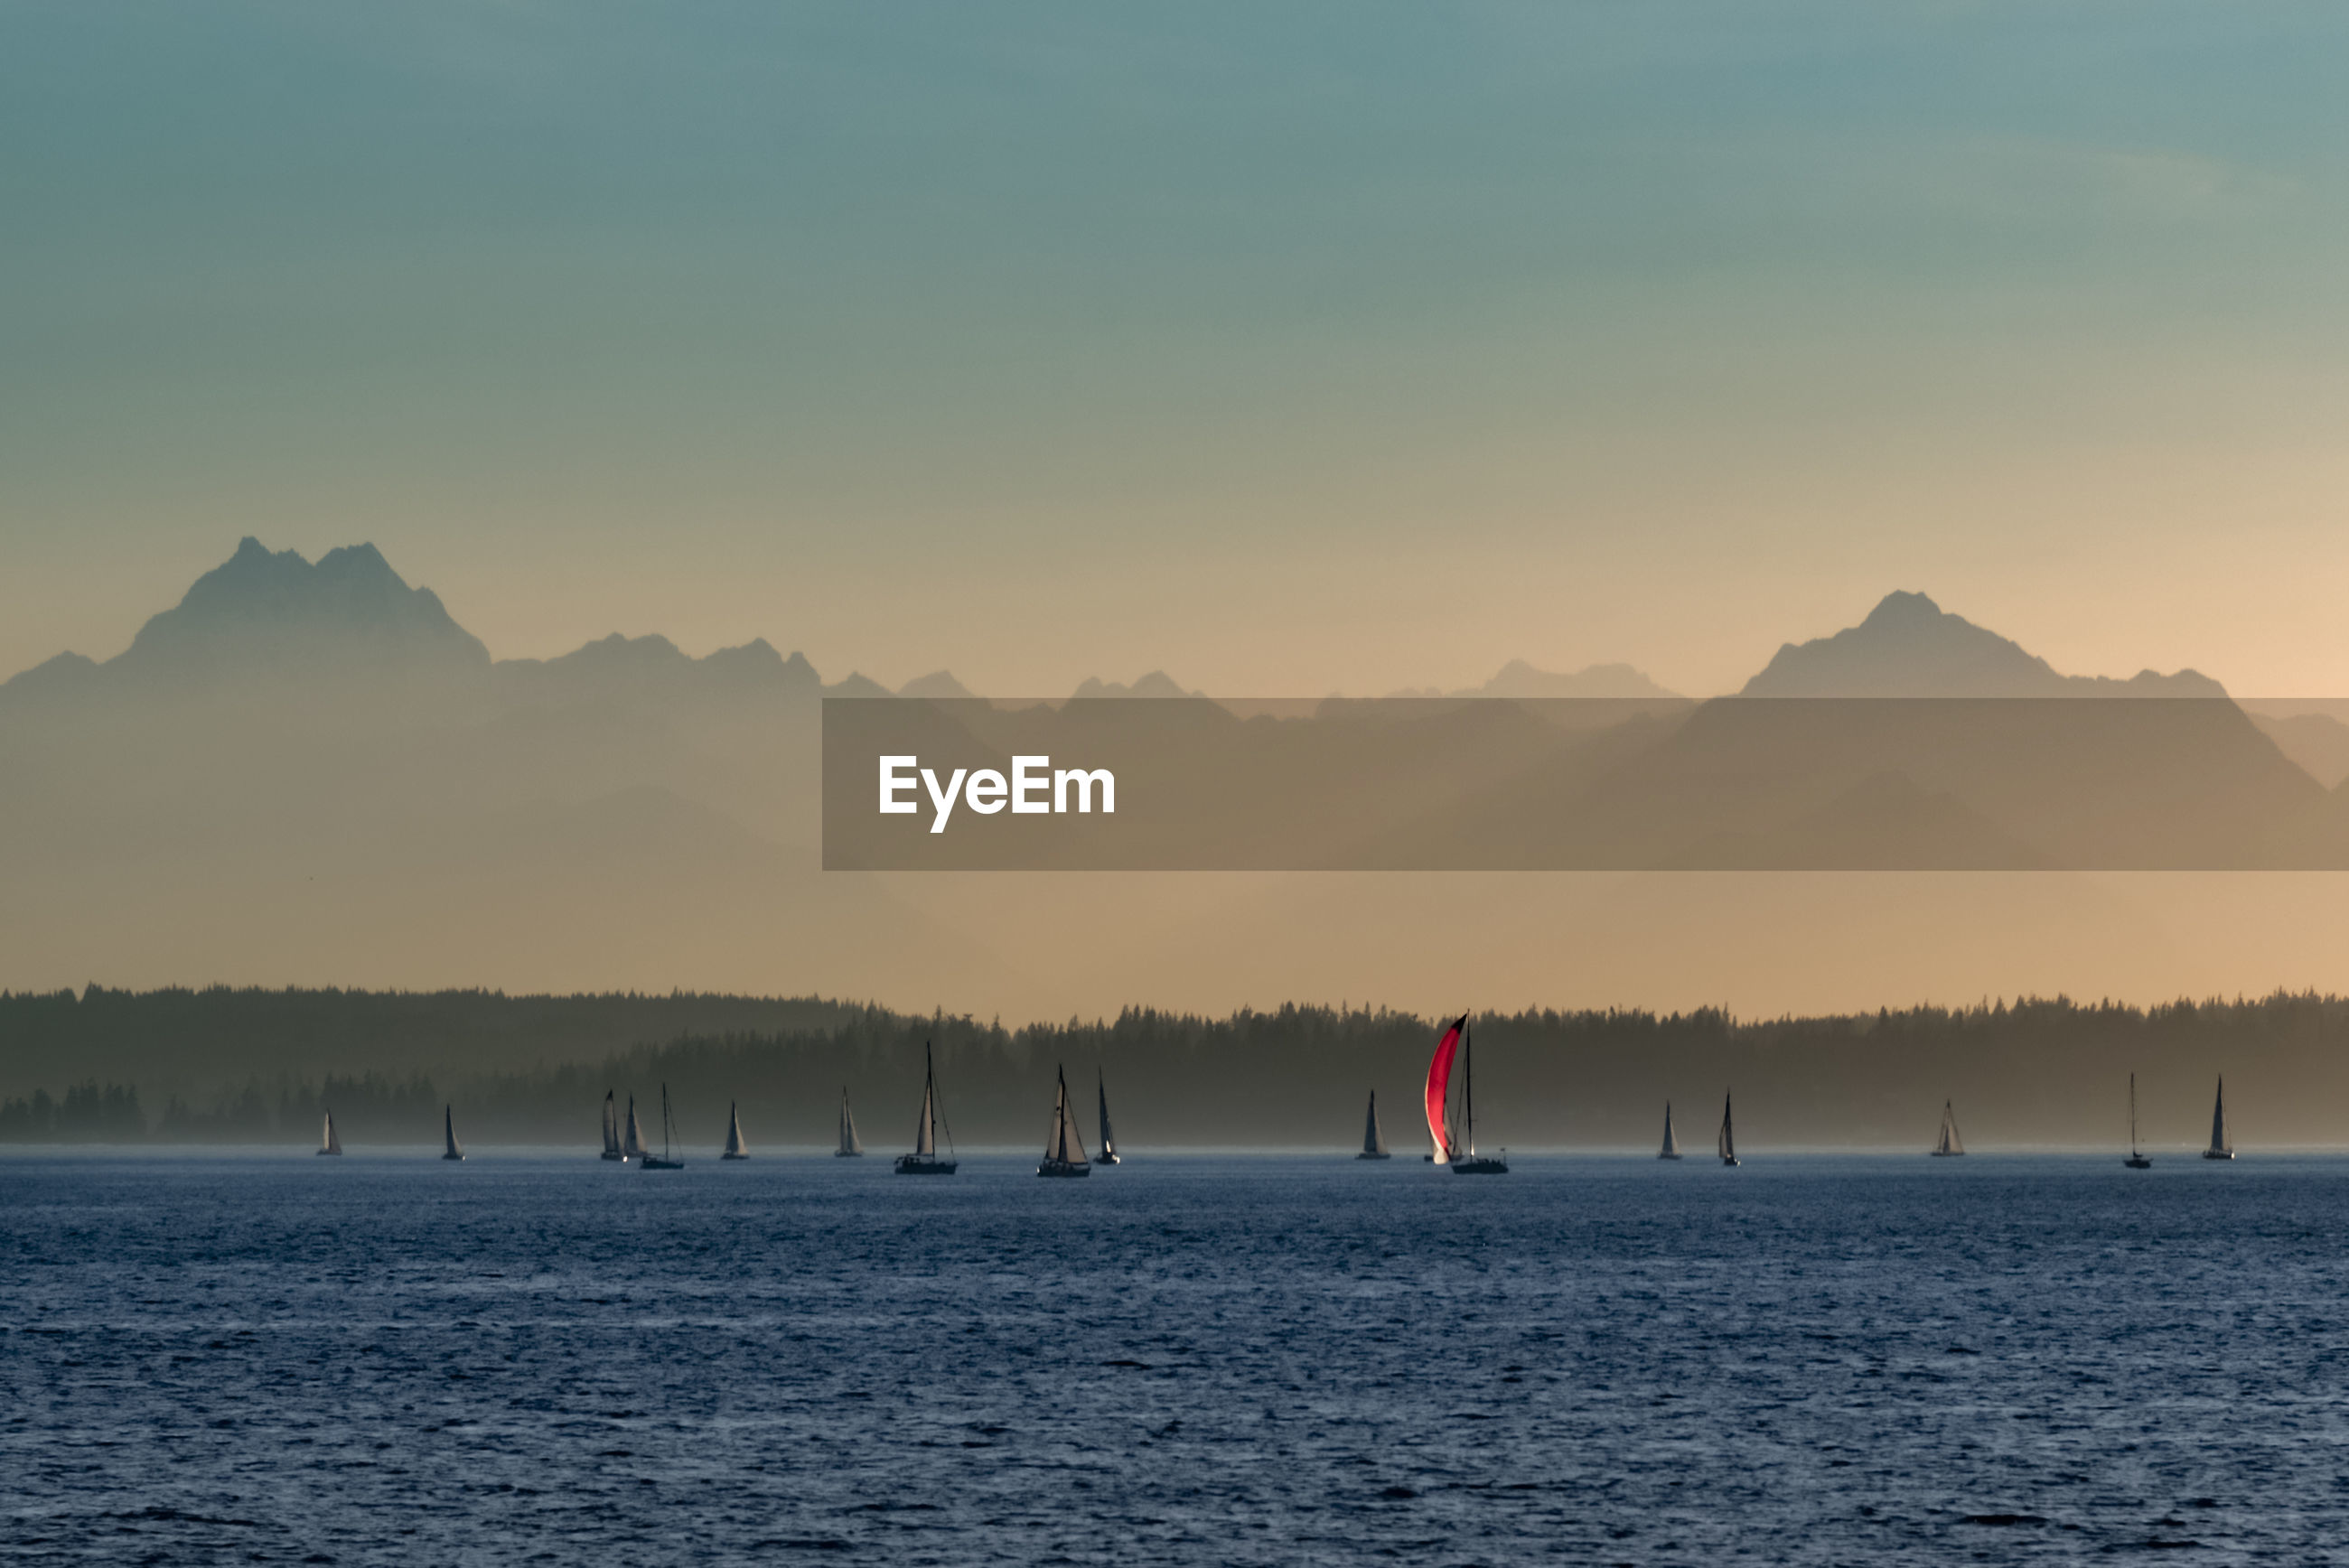 Sailboats on elliott bay by olympic mountains against sky